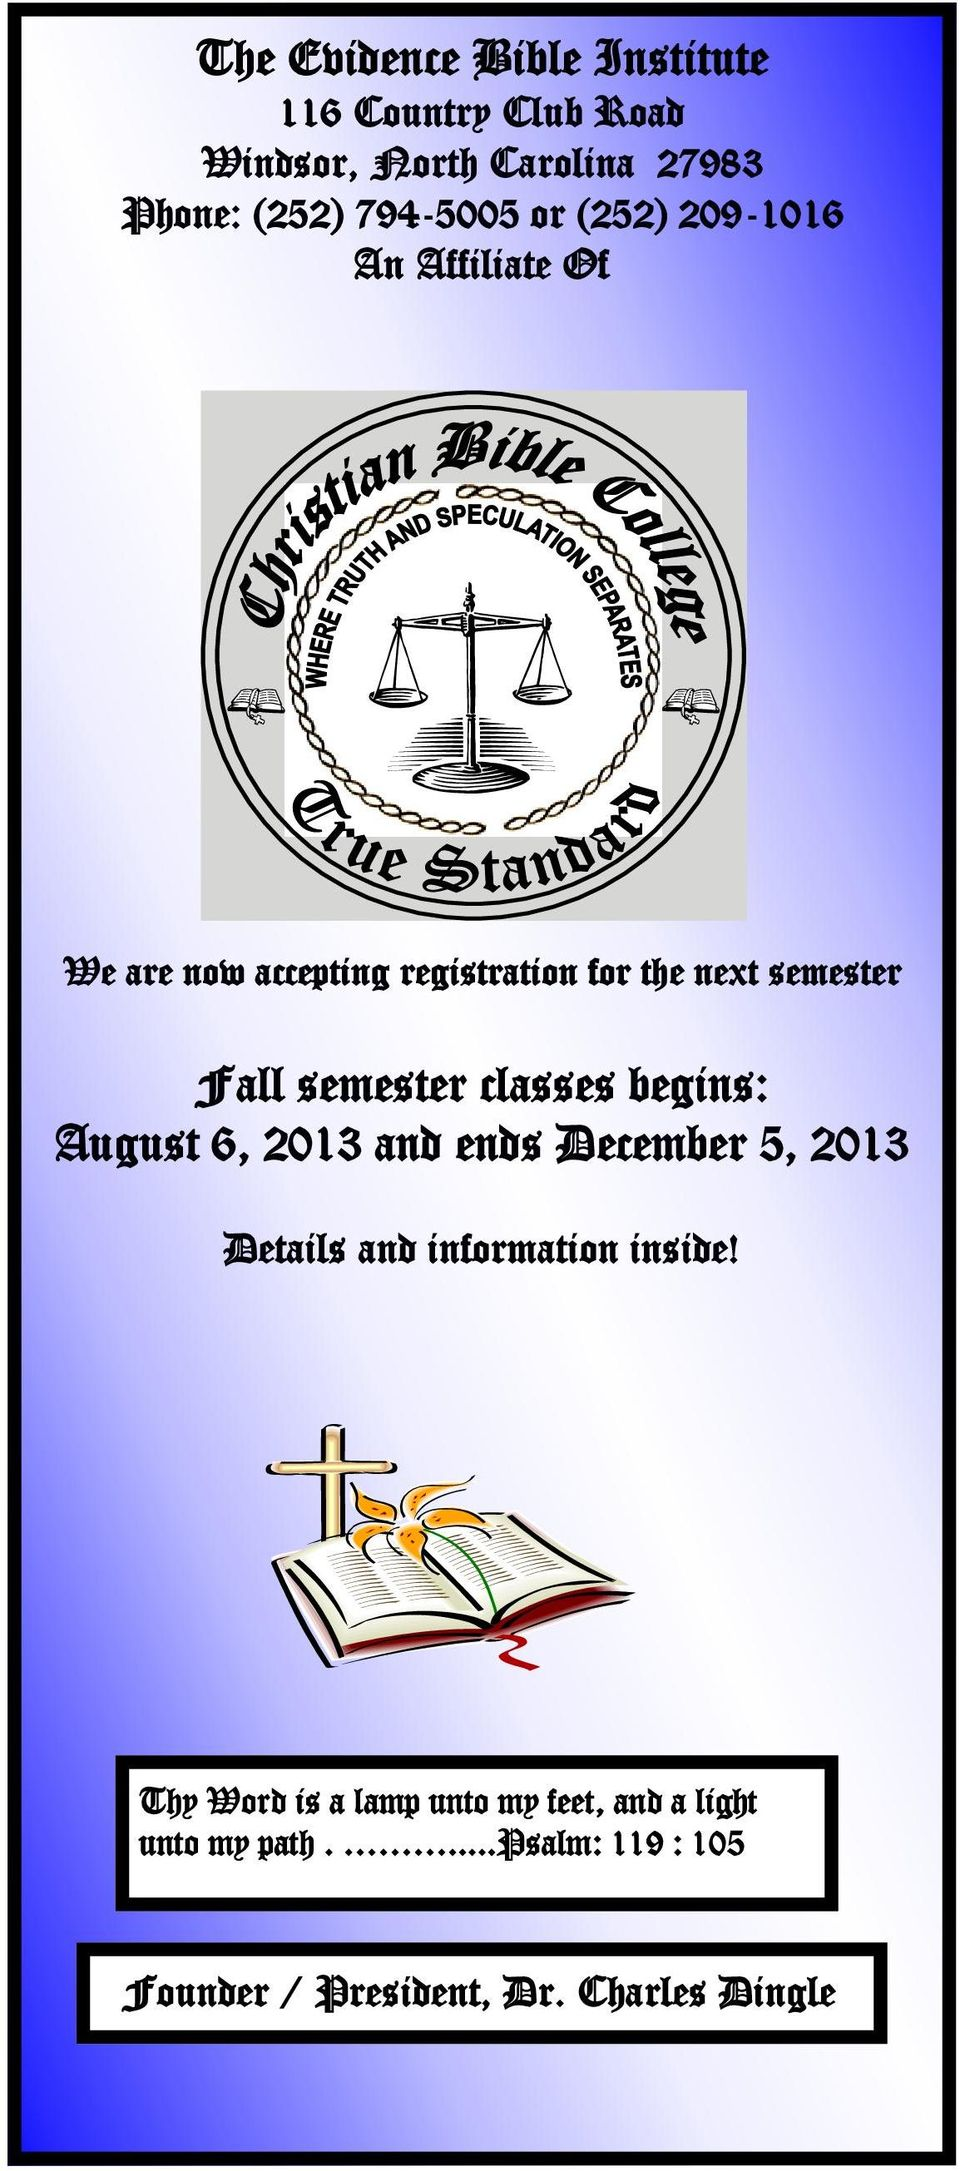 classes begins: August 6, 2013 and ends December 5, 2013 Details and information inside!